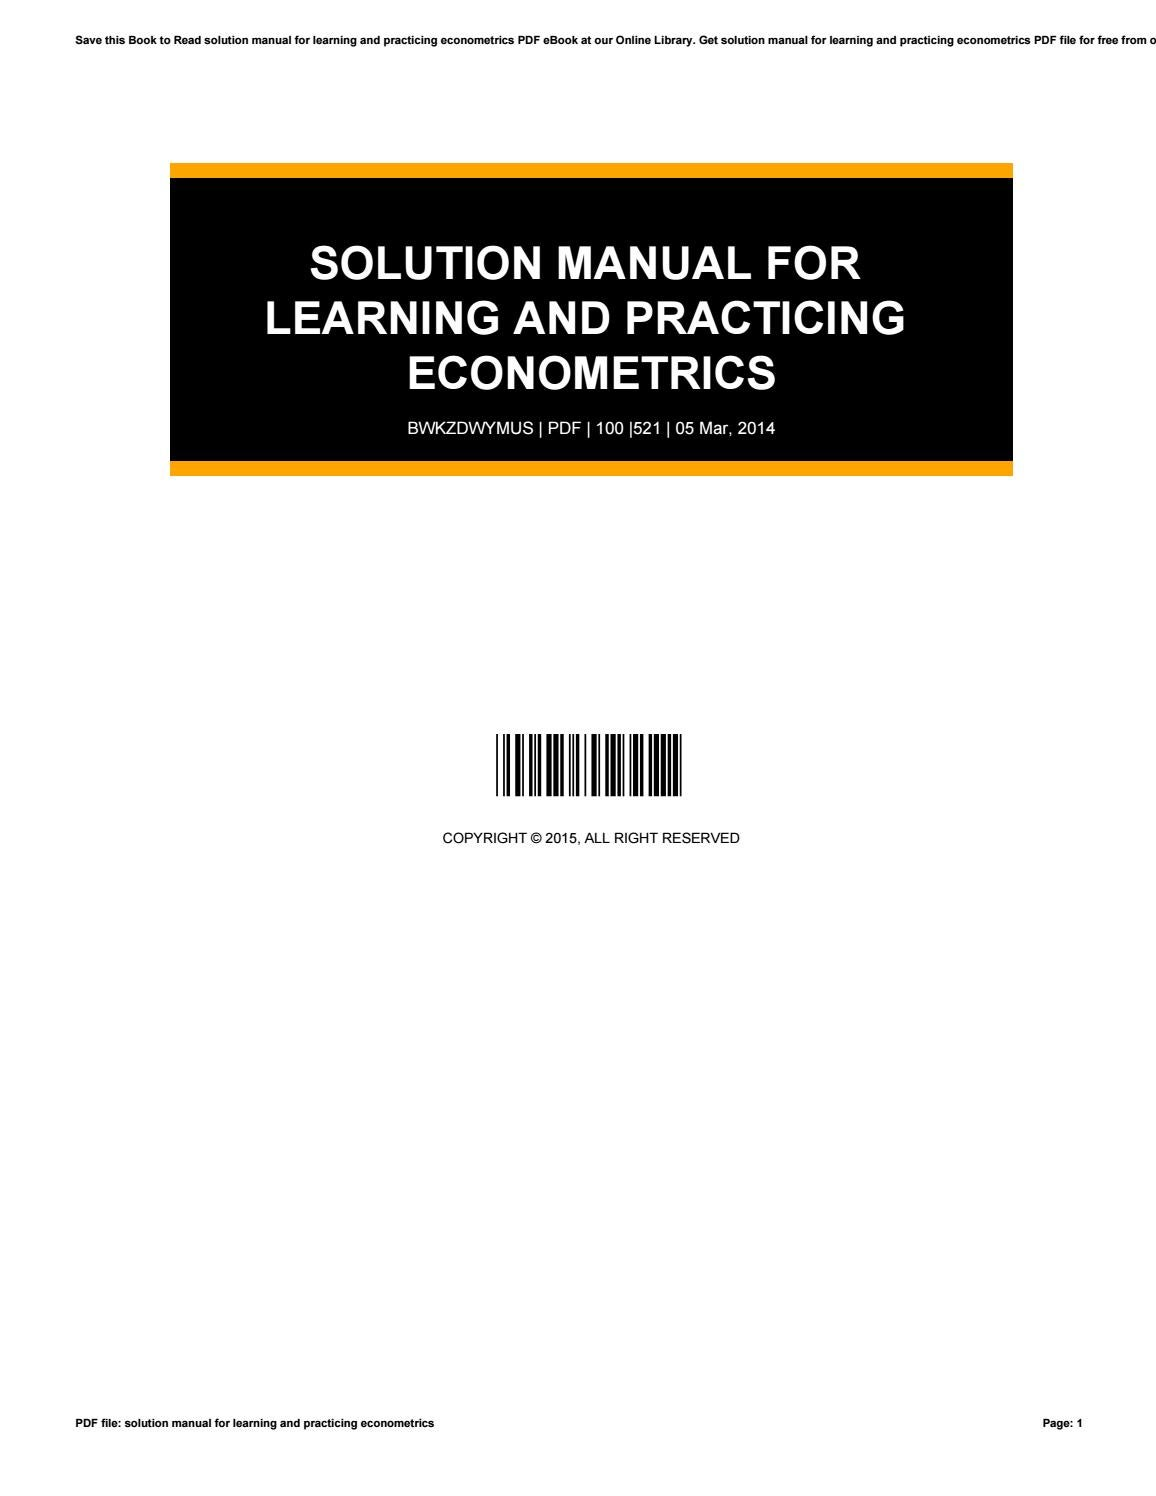 Solution manual for learning and practicing econometrics by  WillieClifford4144 - issuu